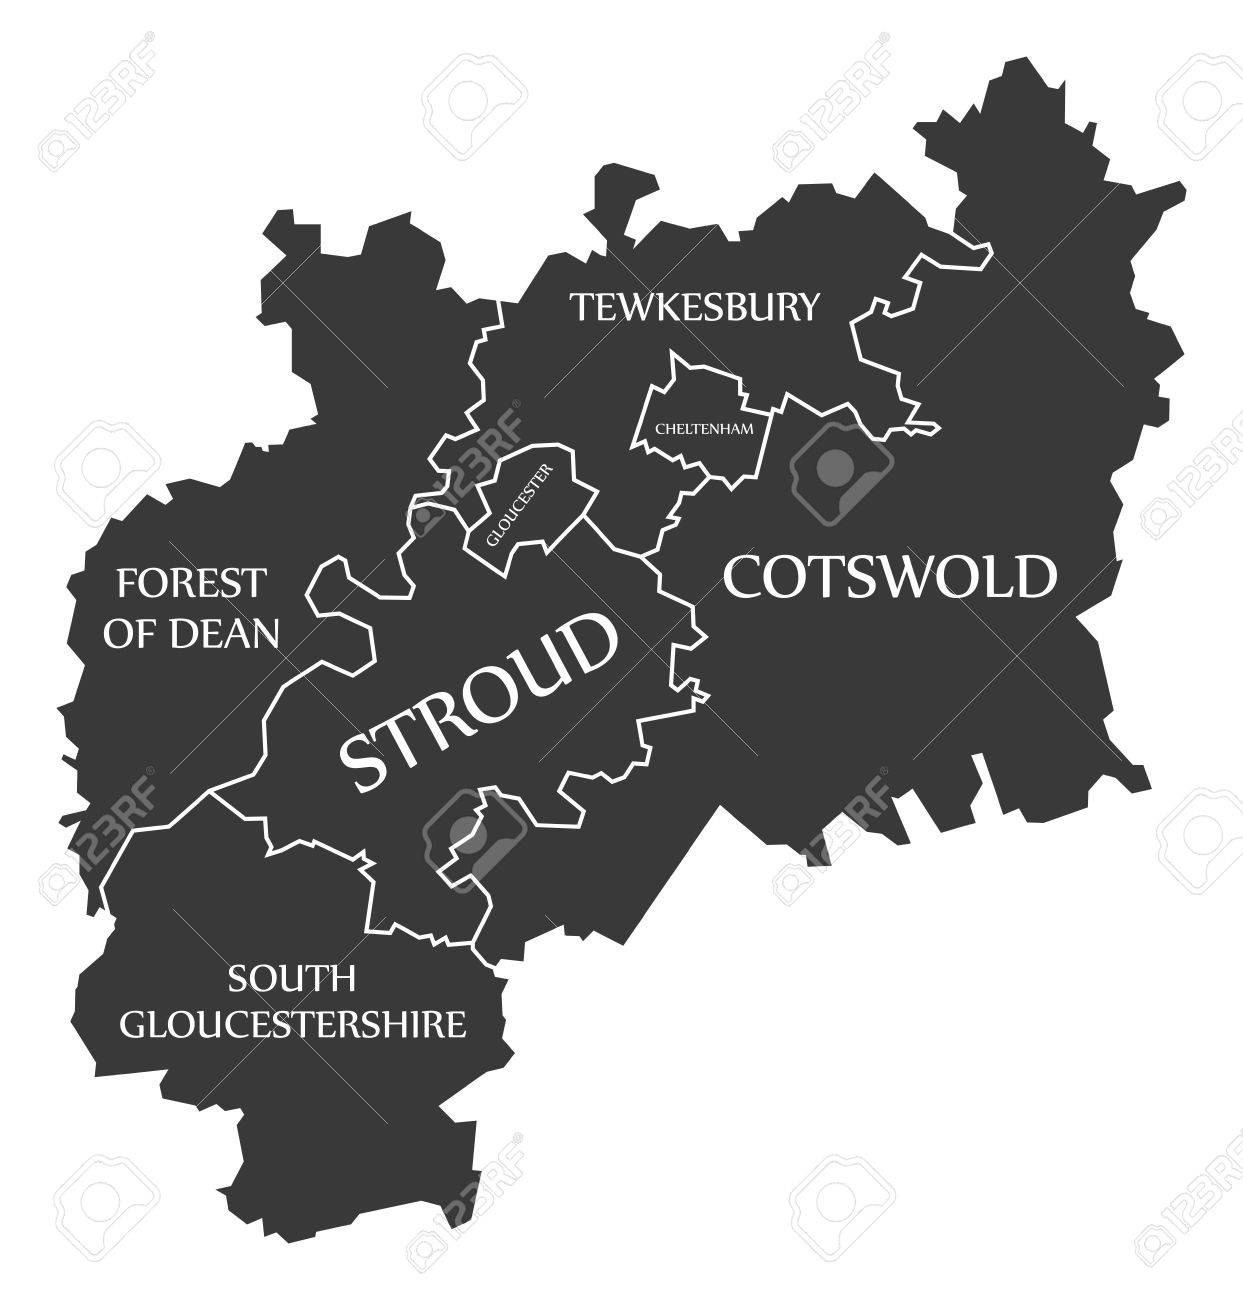 Map Of England Gloucestershire.Gloucestershire County England Uk Black Map With White Labels